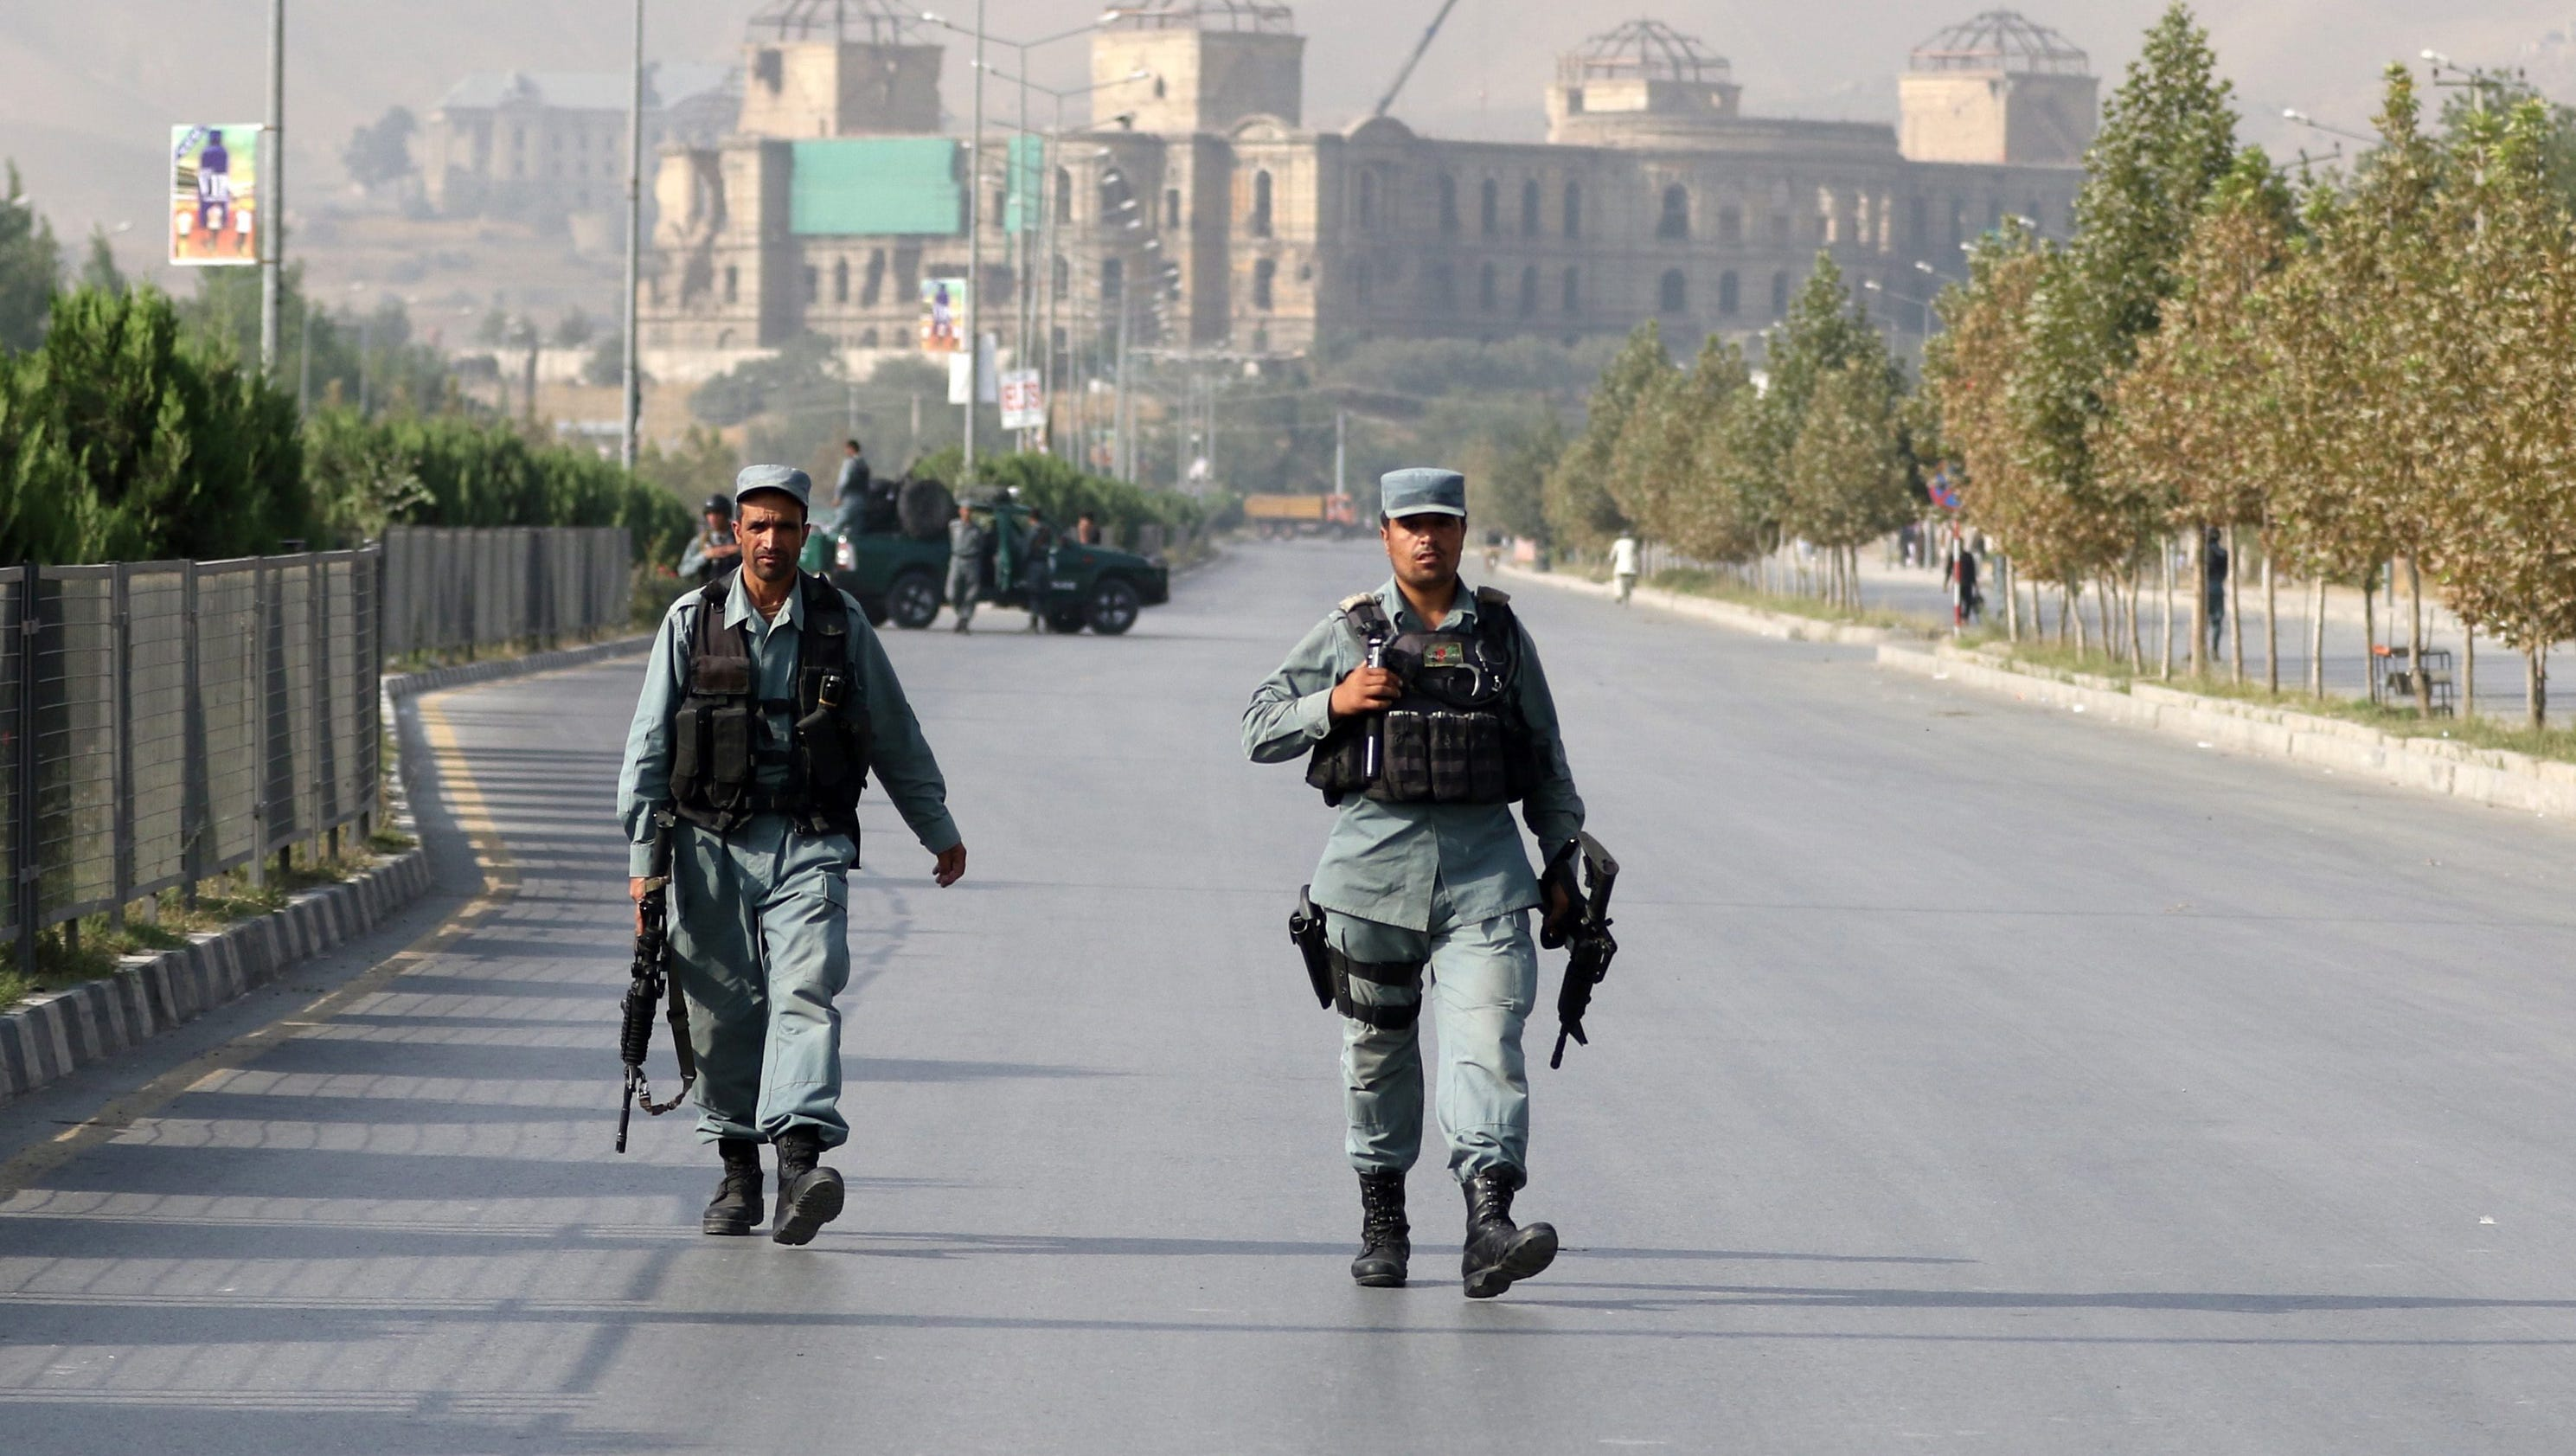 death toll from hcv rises in america Death toll from eastern afghan suicide blast rises to 68 september 12,  (hcv) it is transmitted through direct contact with body fluids, typically through.